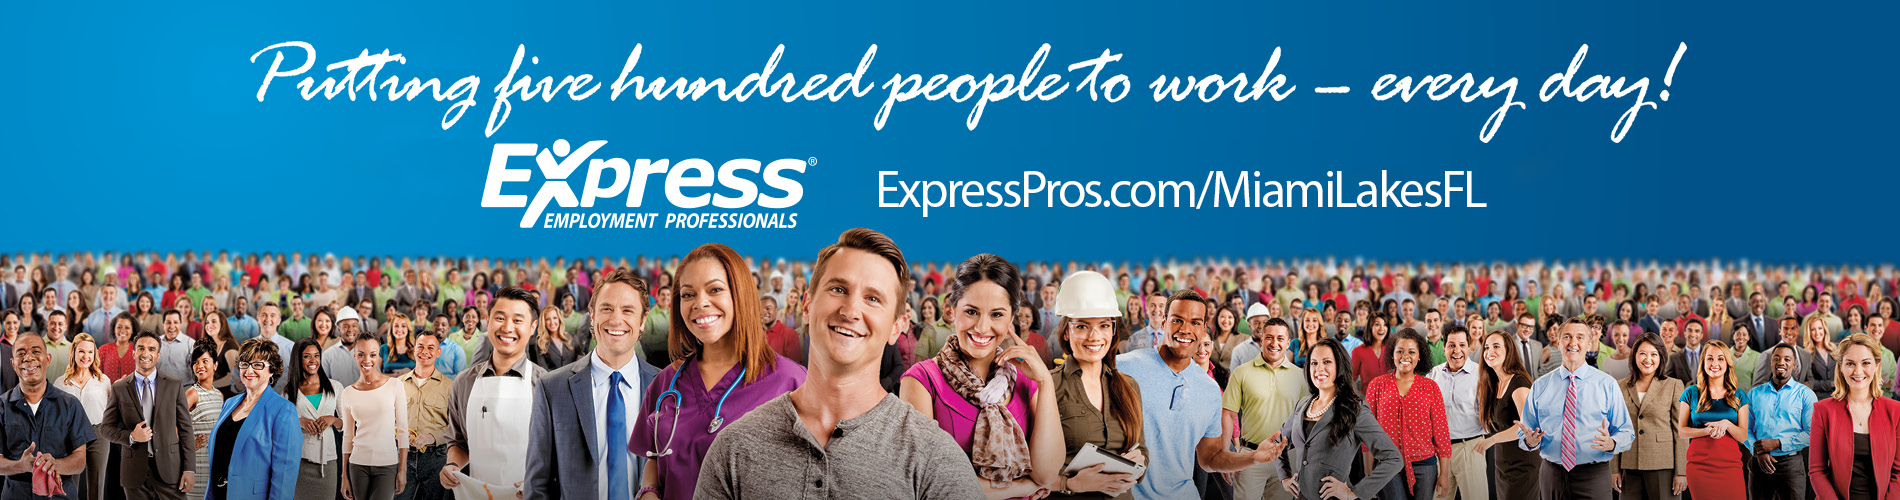 Express Miami Lakes Putting five hundred people to work every day!